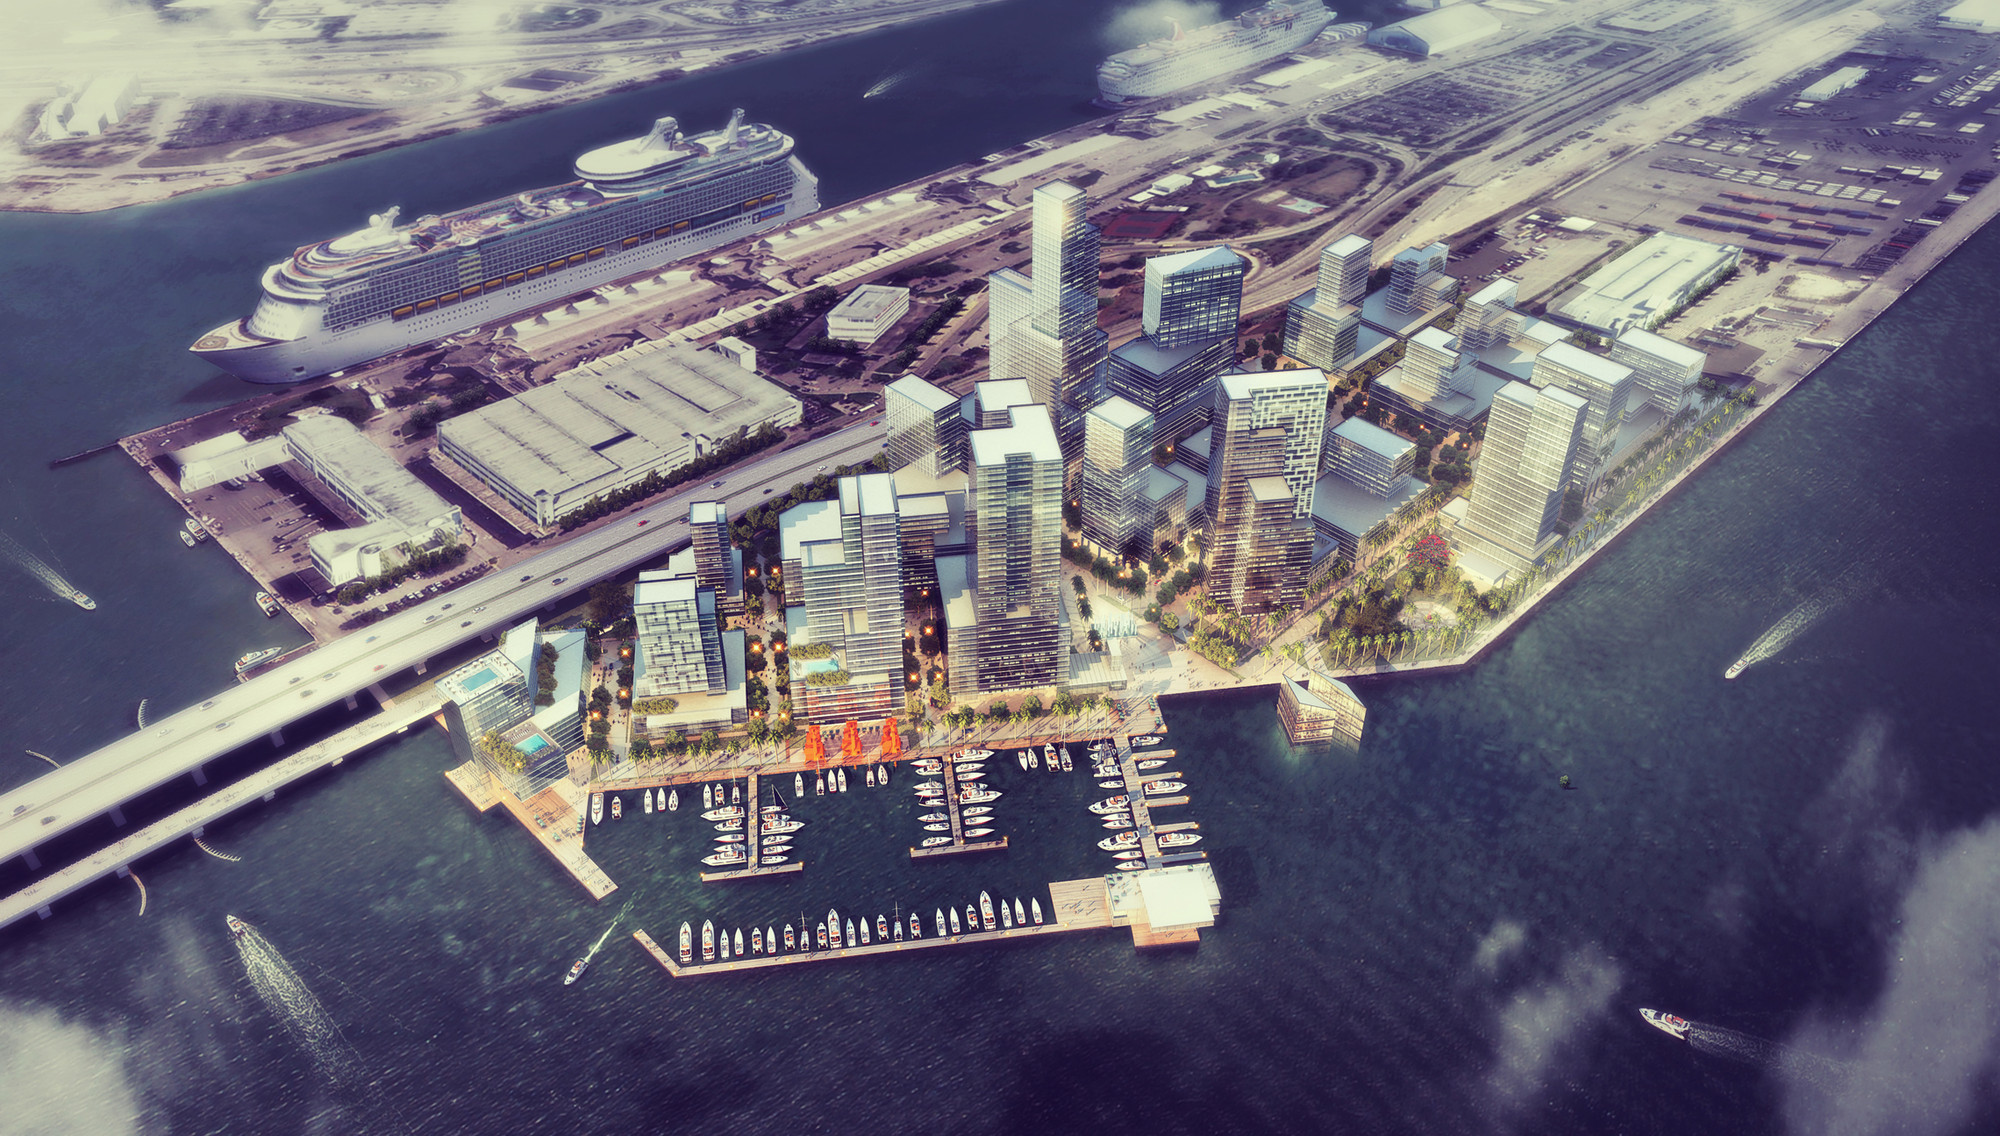 Port Architecture And Design ArchDaily - Port design